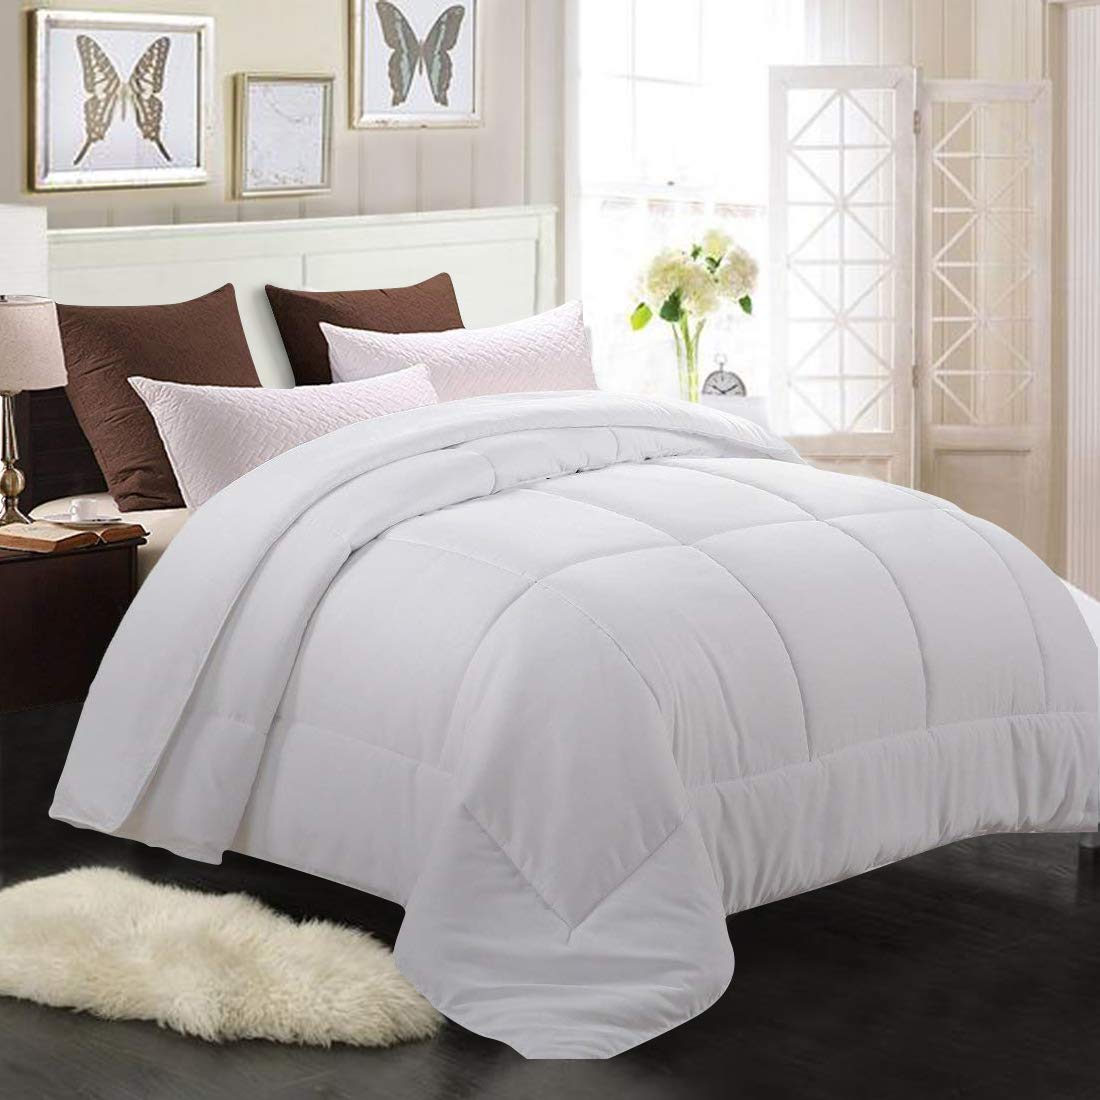 Soft Quilted Down Alternative Duvet Insert with Corner Tabs,Summer Fluffy Reversible Hotel Collection Comforter Gray,64x88 inch MEROUS Twin Comforter